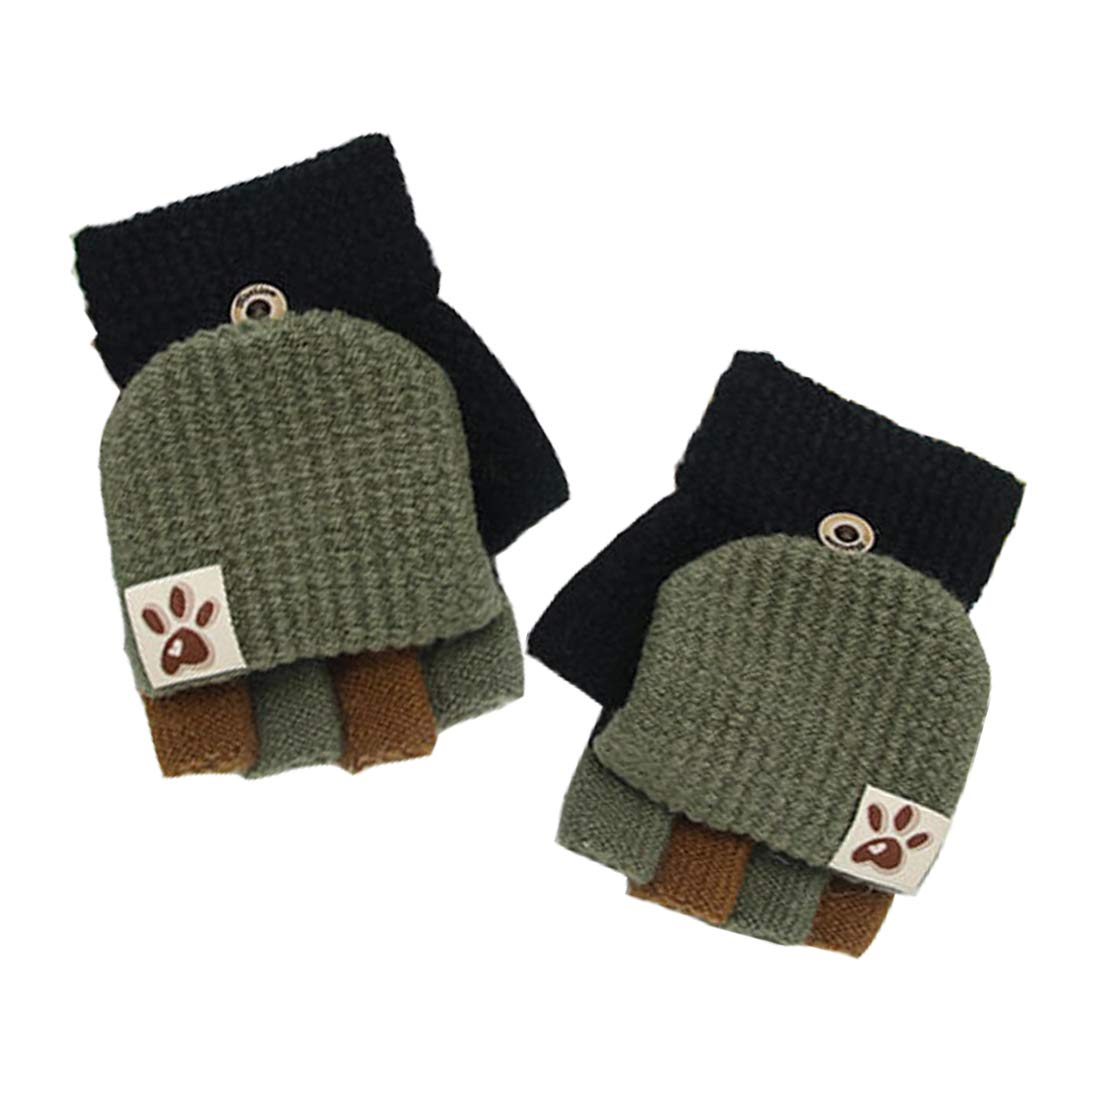 Usunny Kids Gloves Fingerless Texting Gloves with Mitten Cover Winter Warm Knitted Convertible Mittens Flap Cover